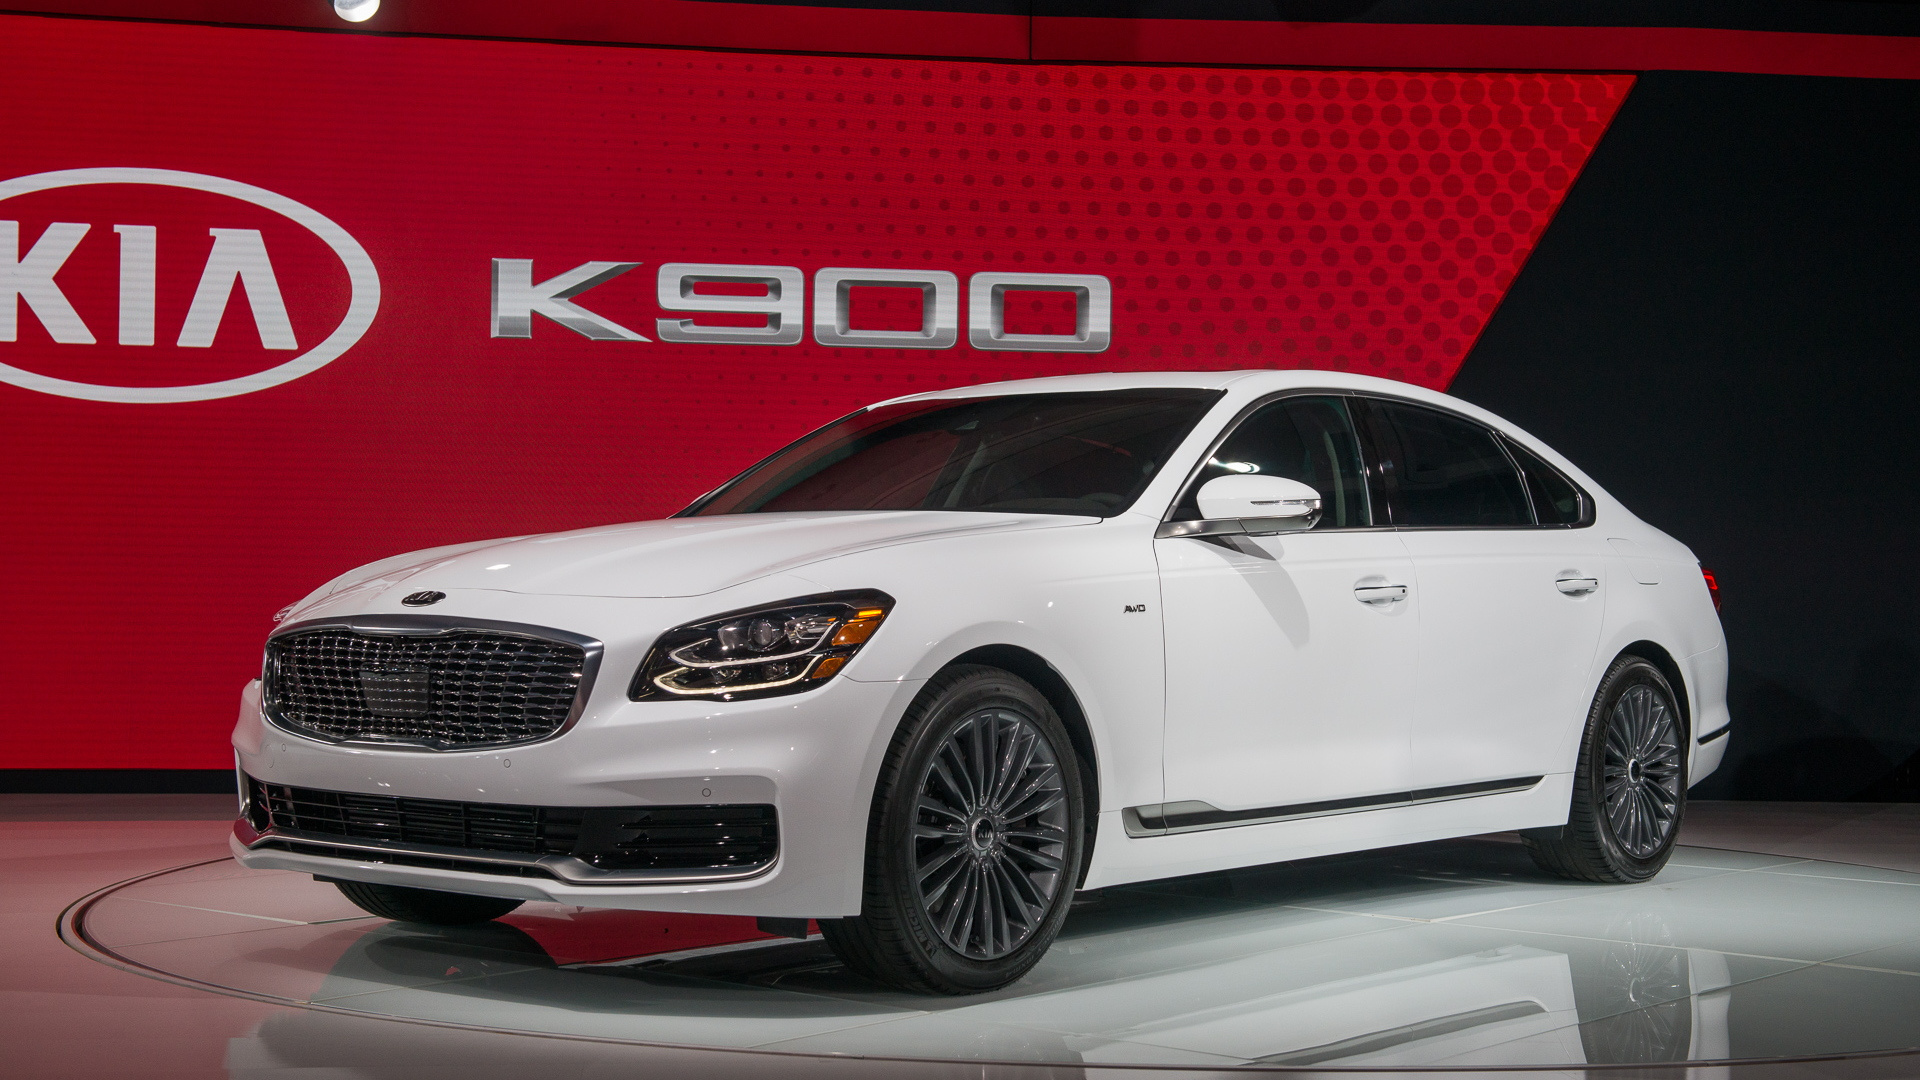 2019 Kia K900, 2018 New York auto show